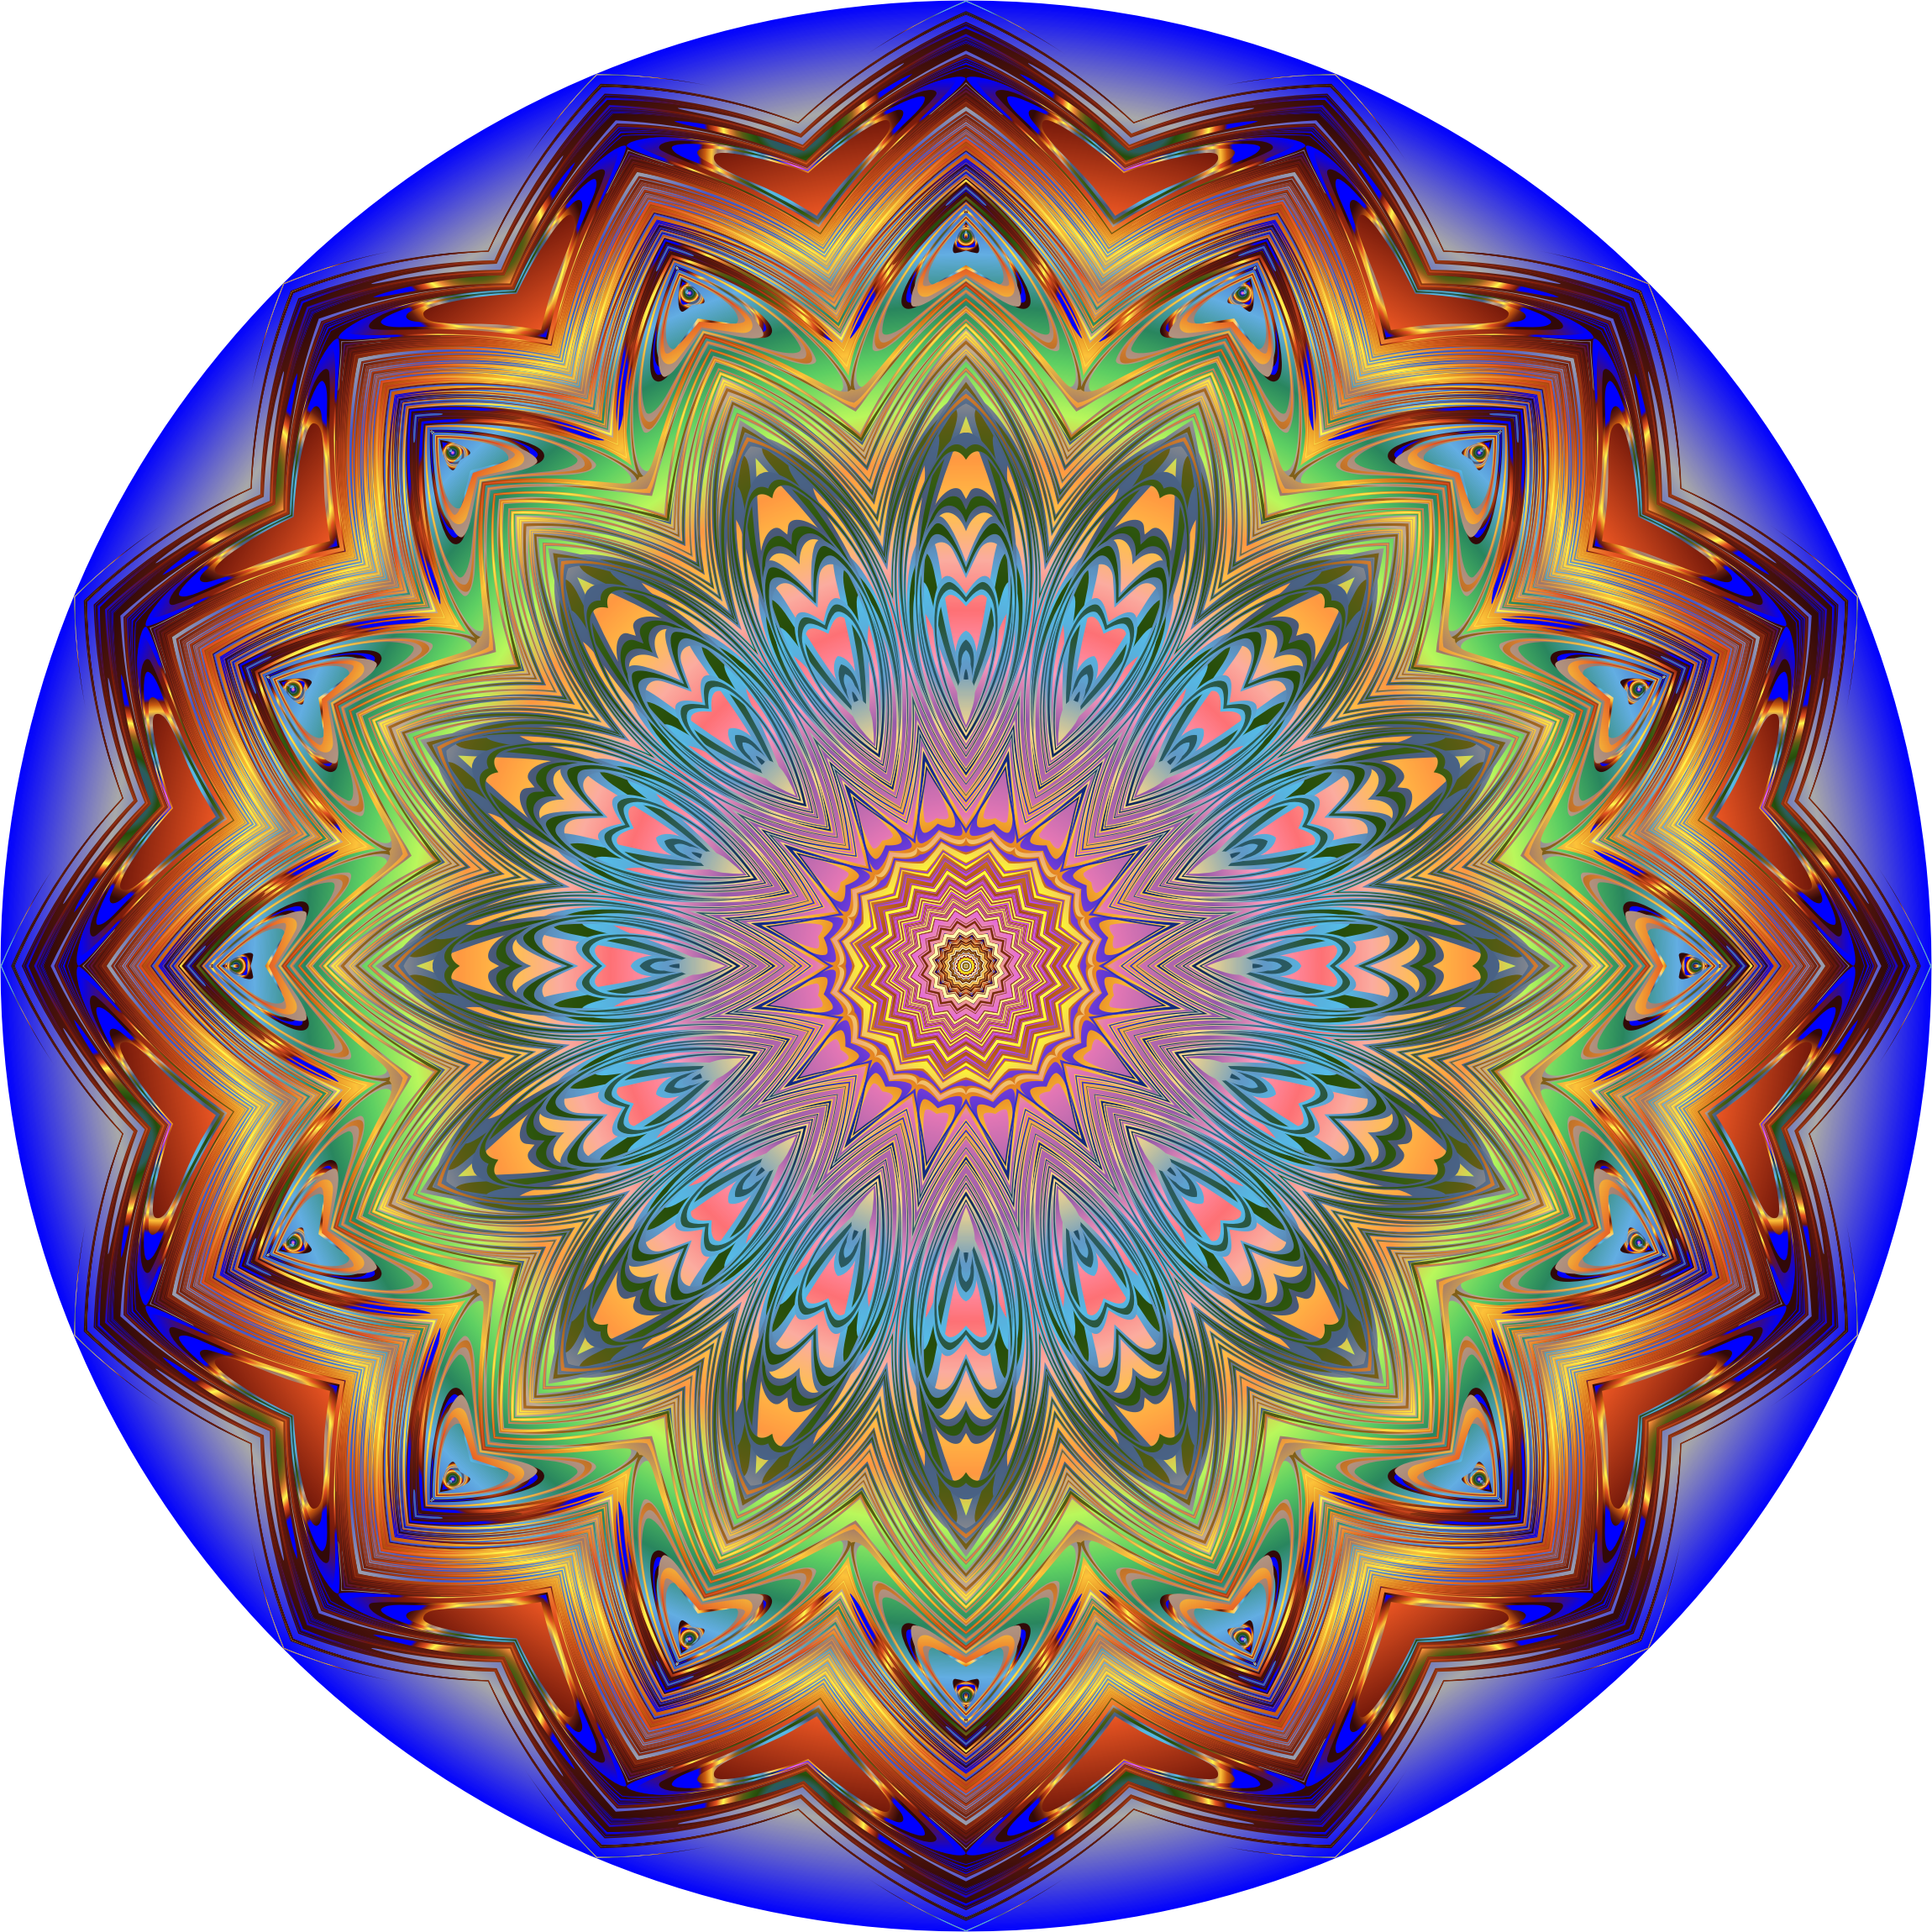 Prismatic Mandala Line Art 10 Variation 2 by GDJ